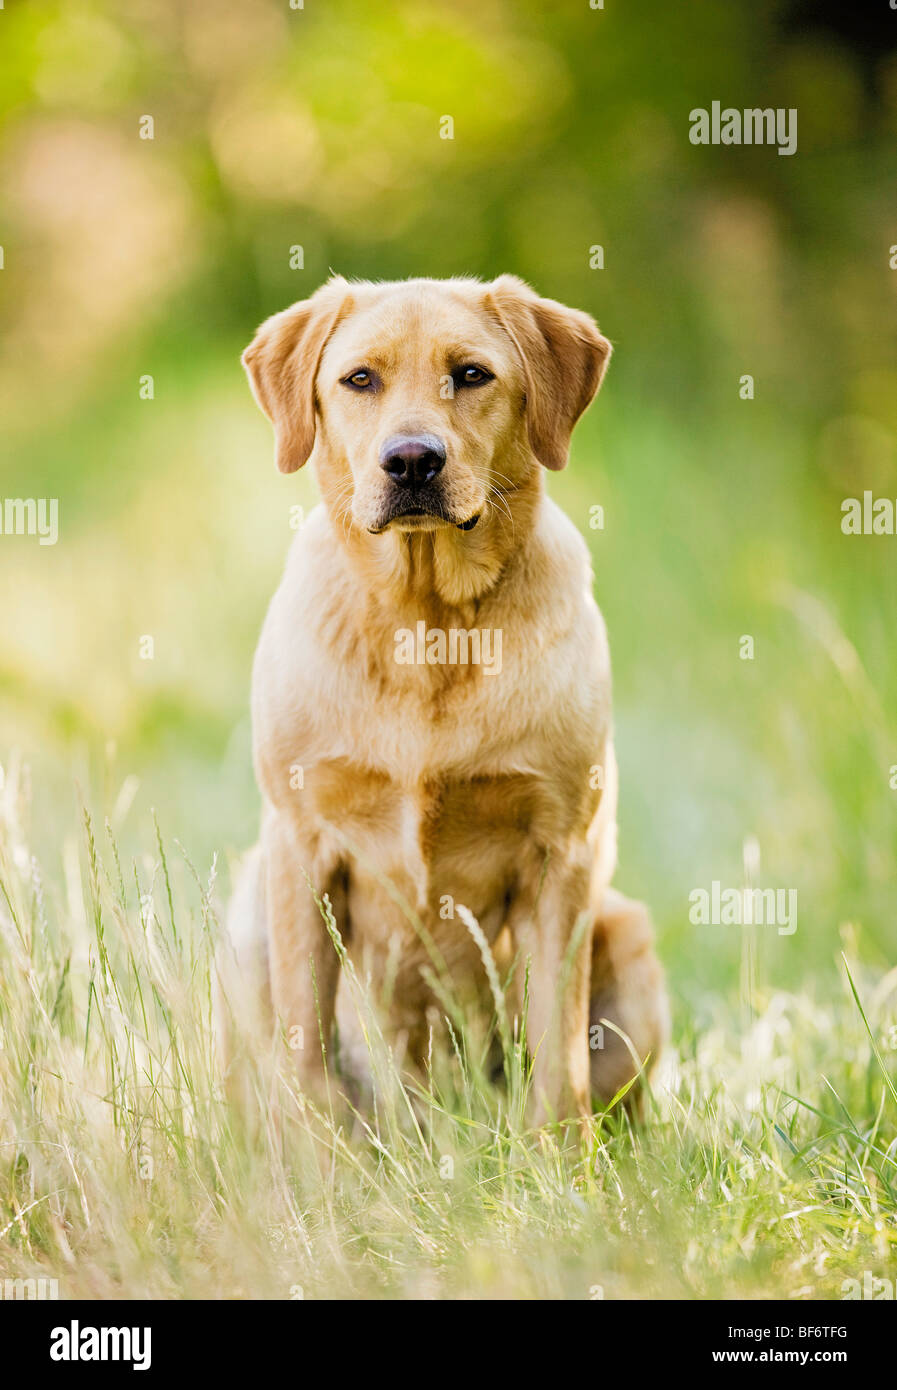 Labrador Retriever dog - sitting on meadow - Stock Image